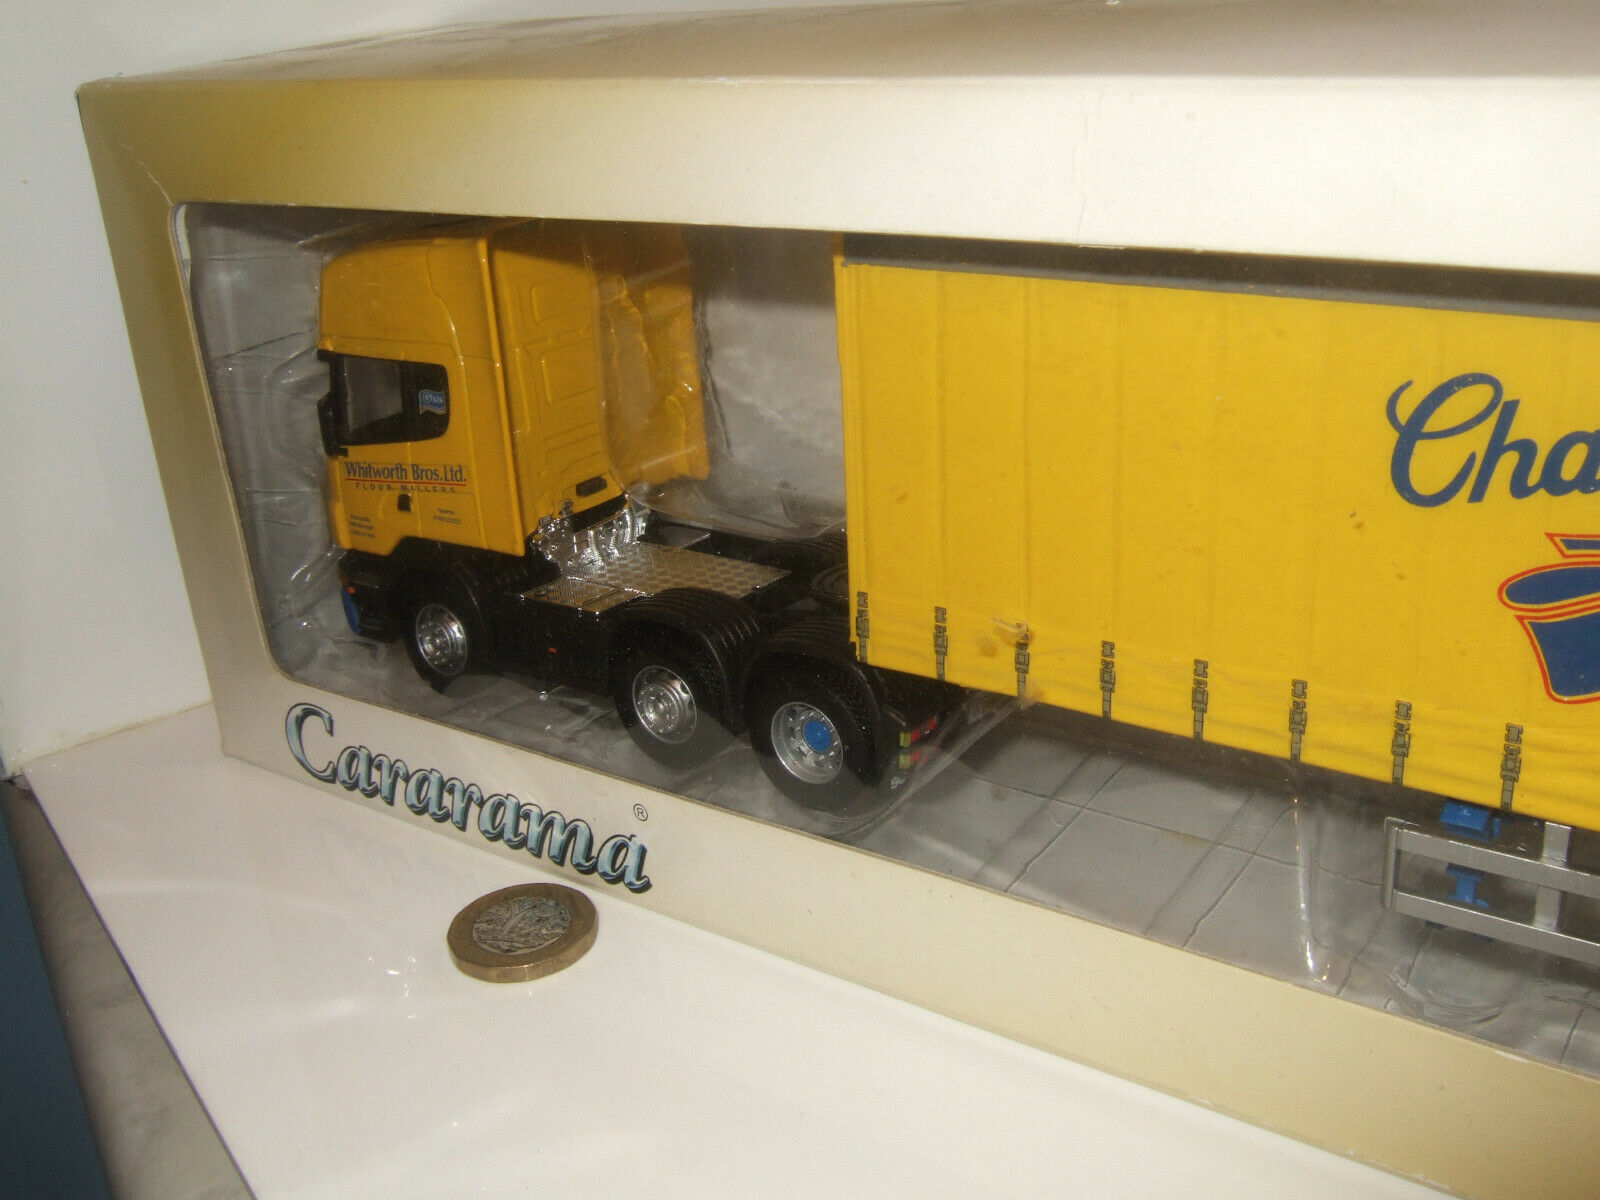 Cararama Cararama Cararama Scania Topline Artic Curtain Sider for Whitworth Bros Ltd 1 50 Scale. 742384